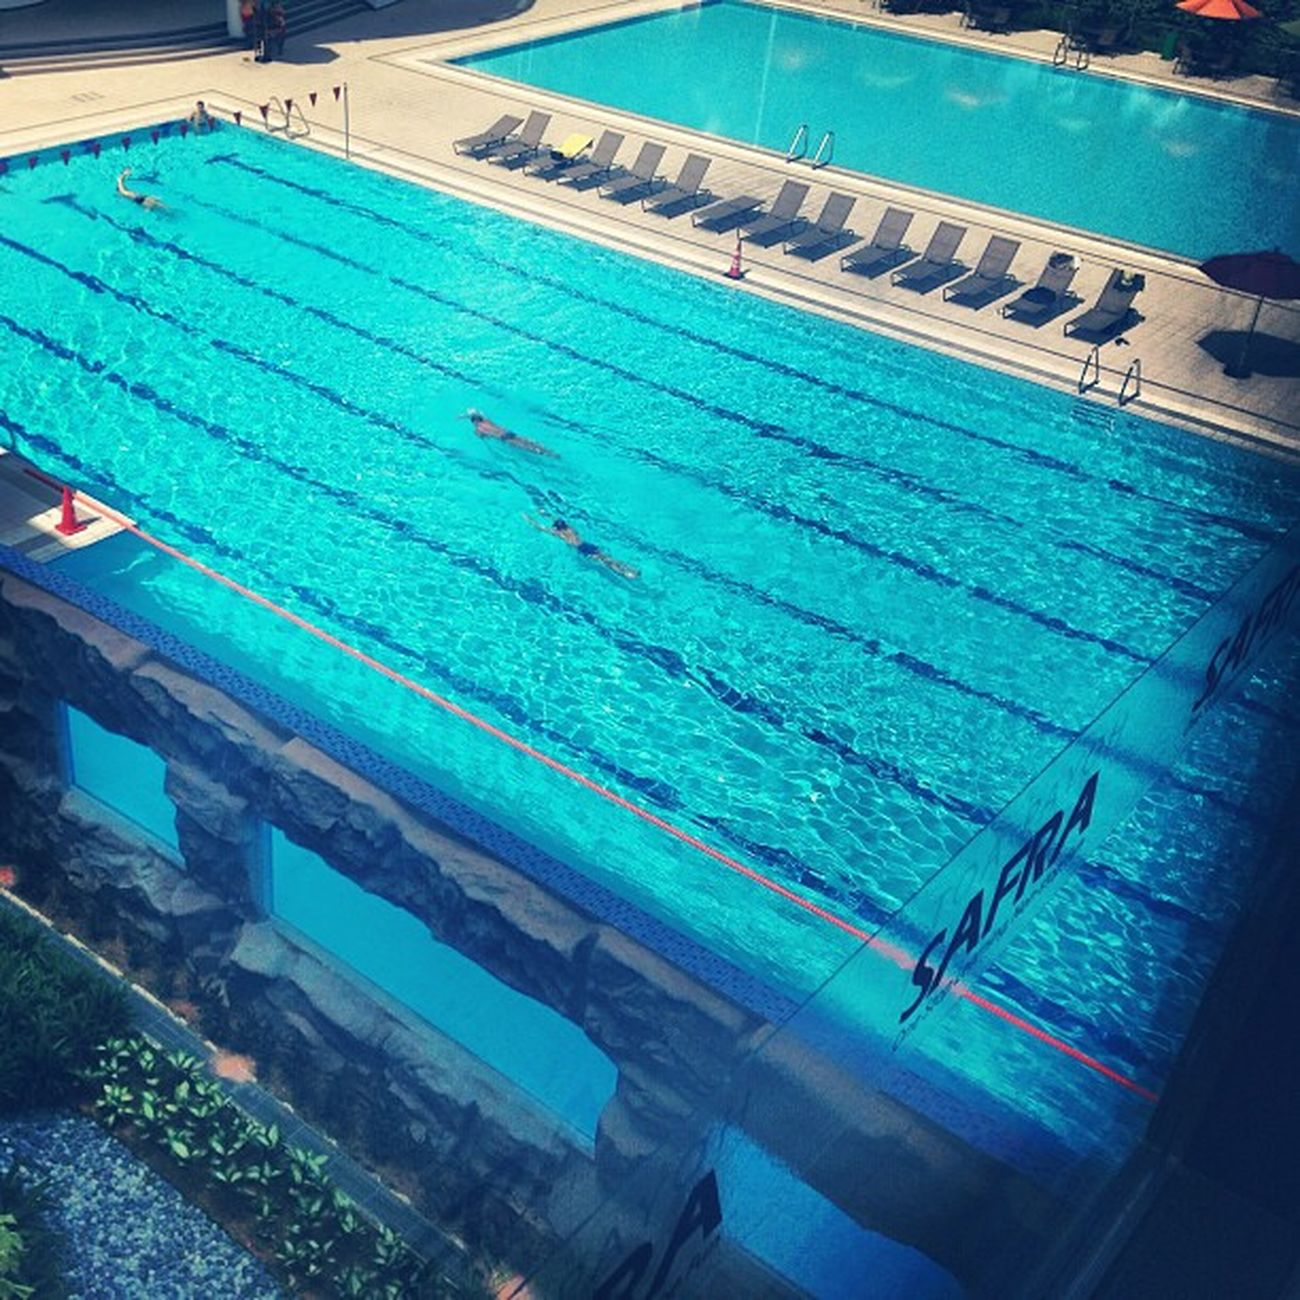 Safra last Friday! Safra Swimming Pool Blue sunny tan